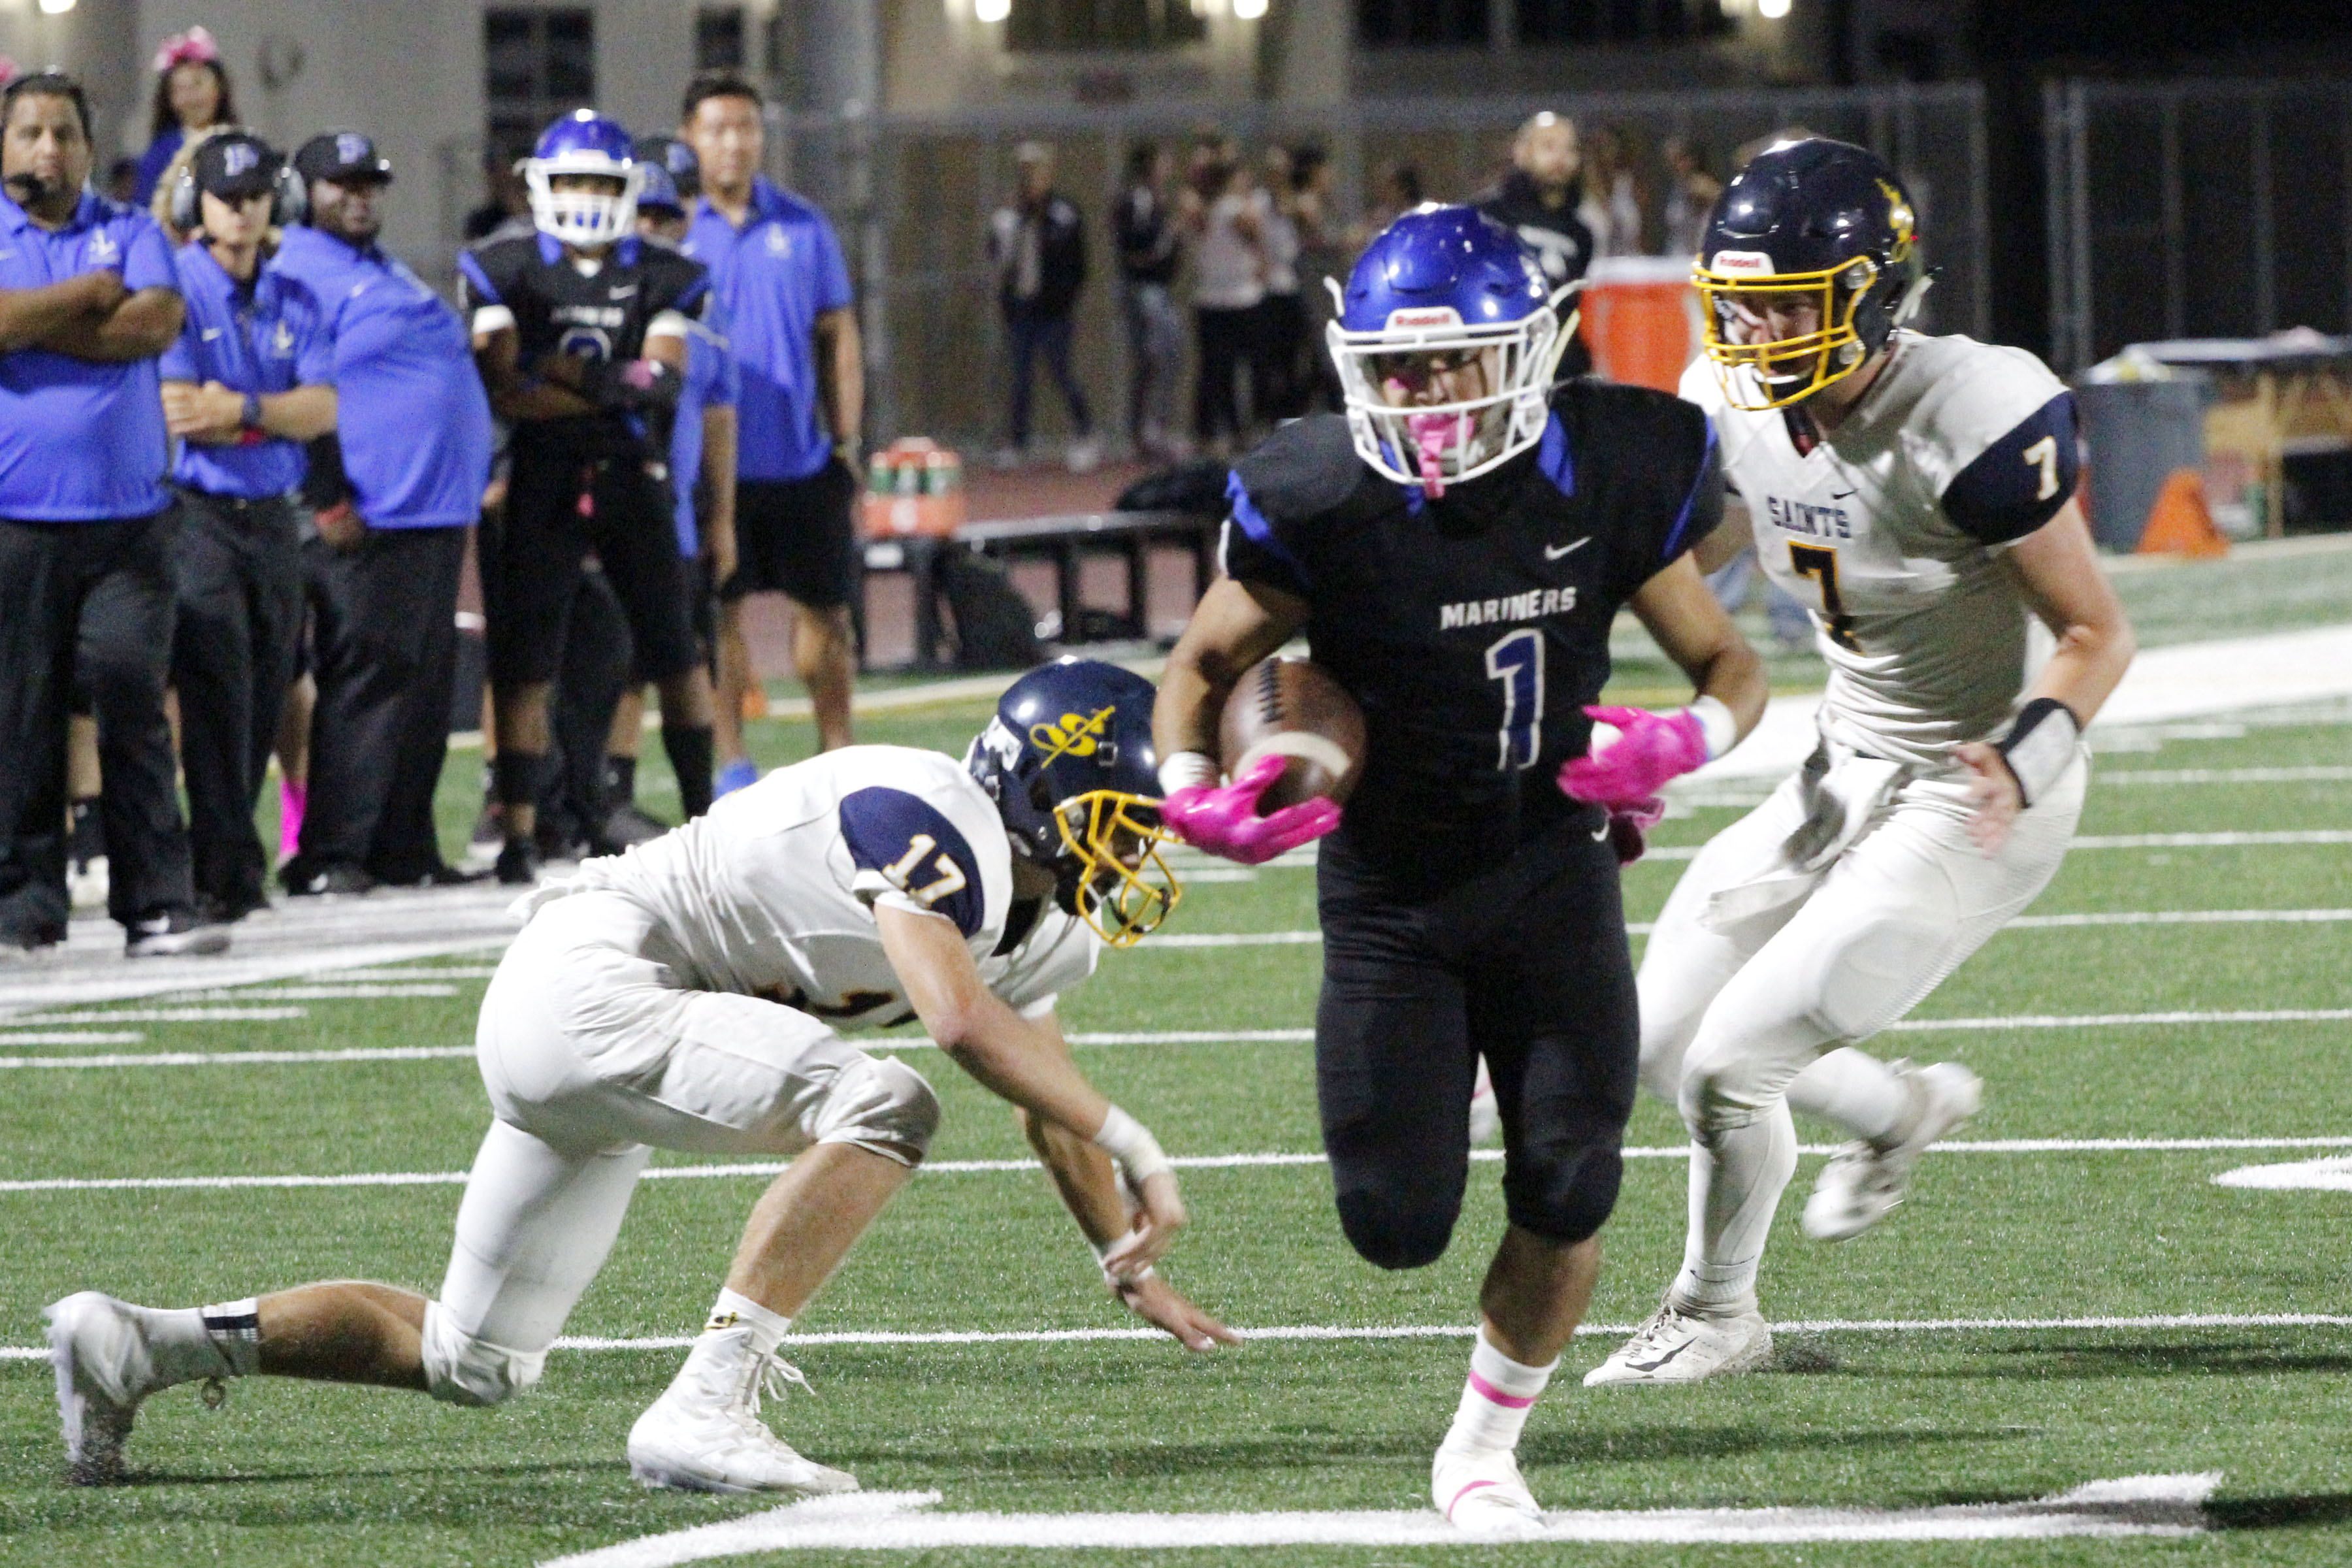 foothill league football games - HD3600×2400